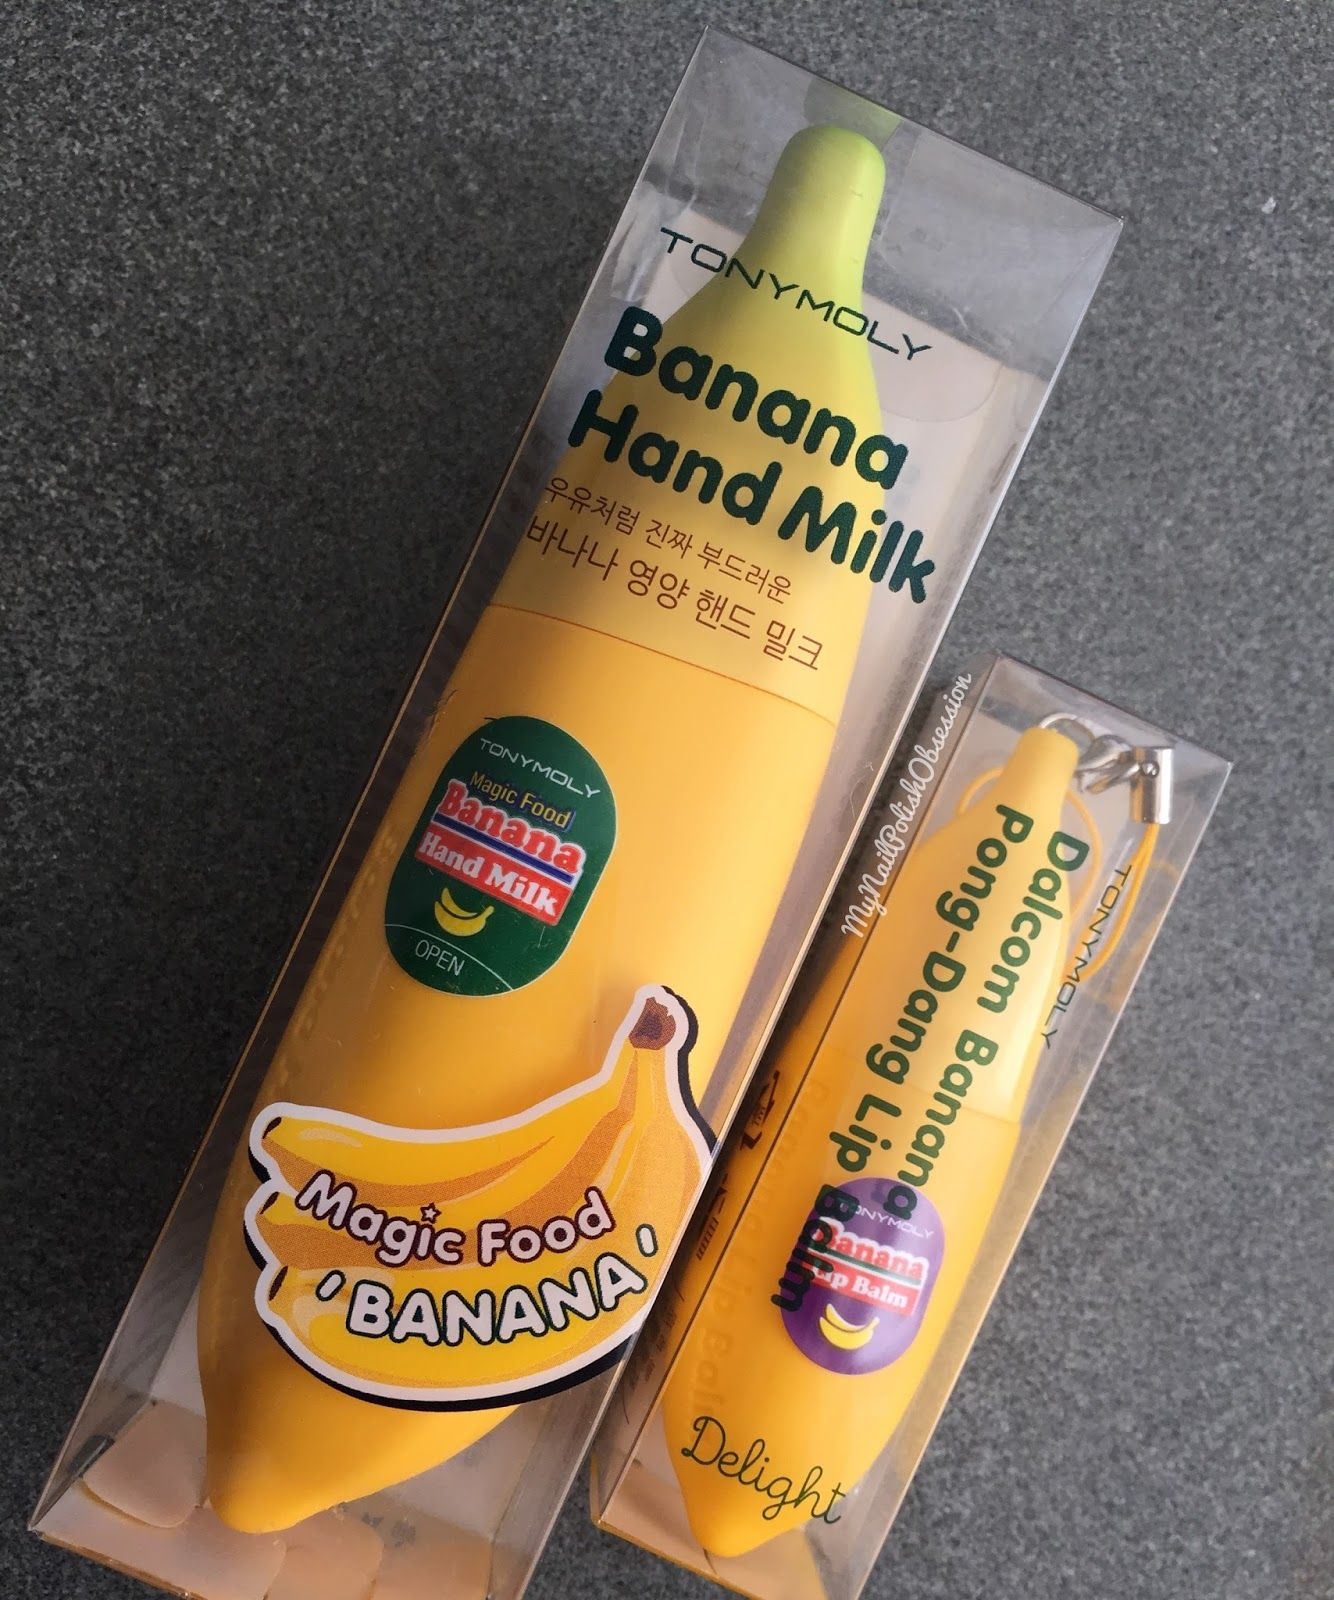 Tony Moly Banana Hand Milk & Banana Lip Balm (beauty